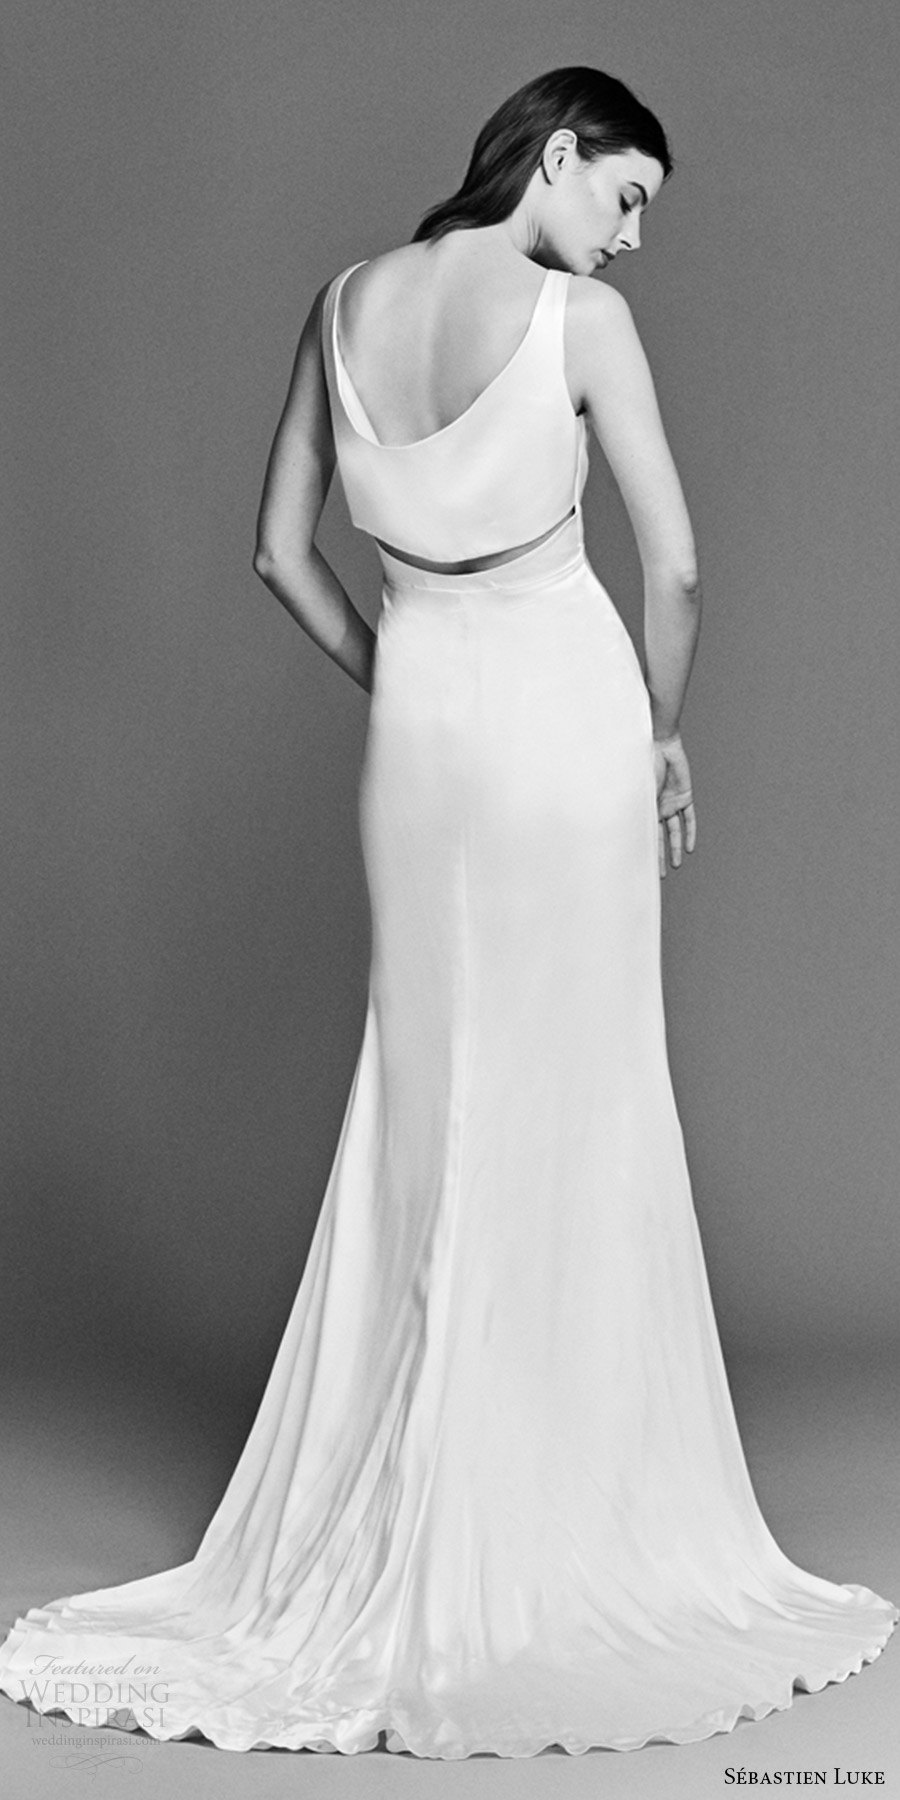 sebastien luke spring 2018 bridal sleeveless v neck clean sheath wedding dress (18b14b) bv short train modern chic